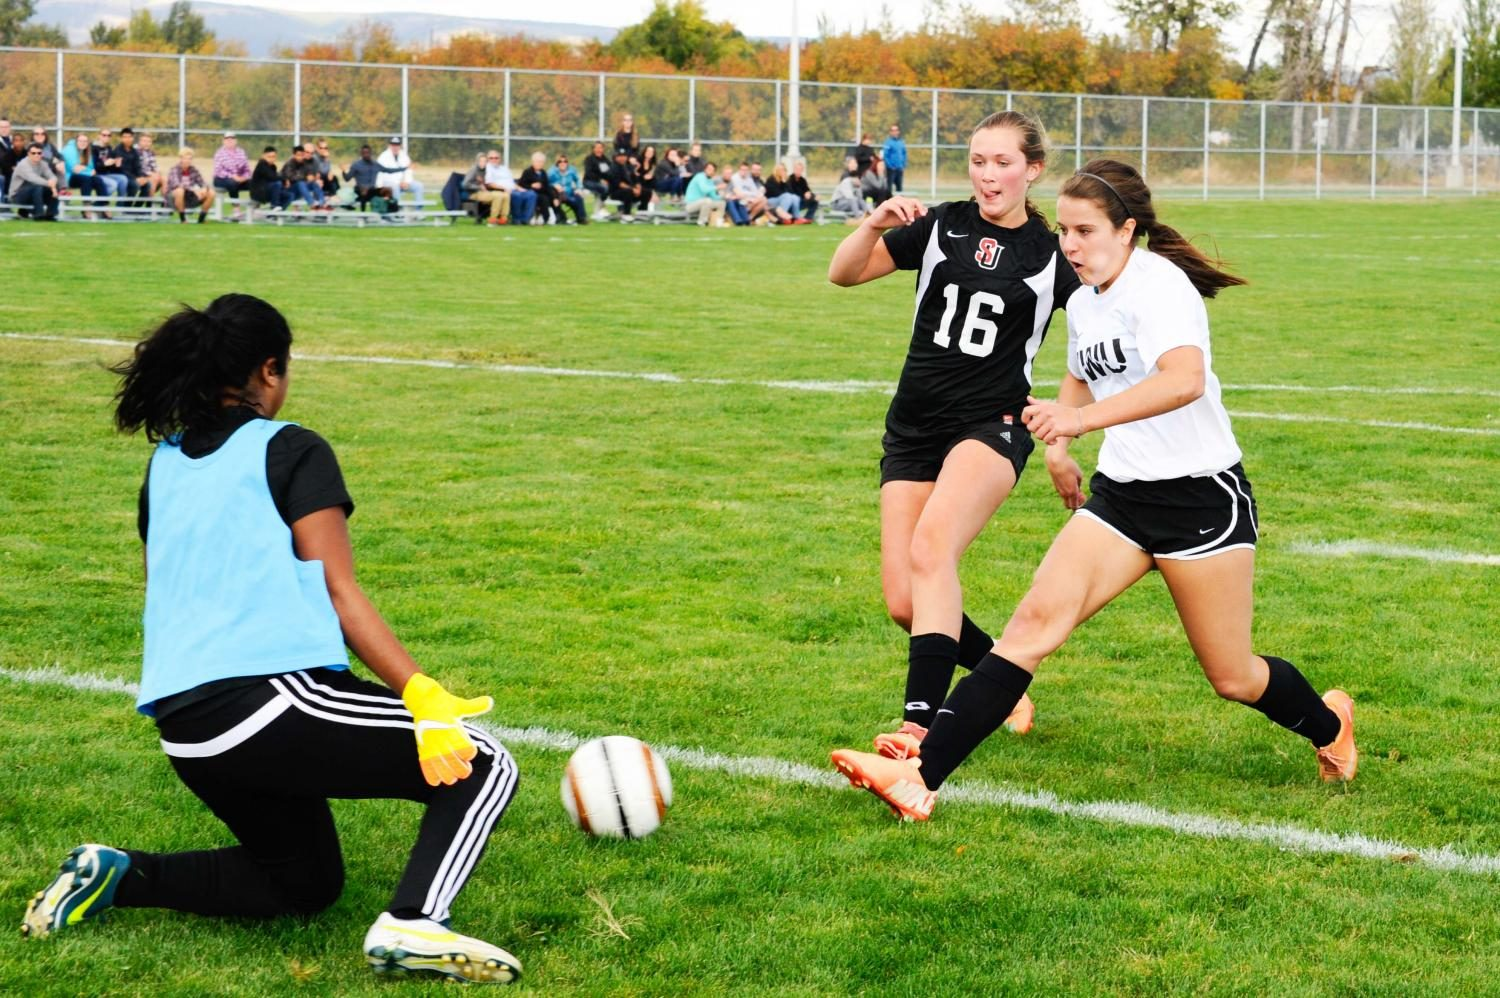 Junior+forward+Sally+Vlas+trying+to+get+the+ball+past+the+Seattle+University+goalkeeper+during+a+matchup+in+the+fall.